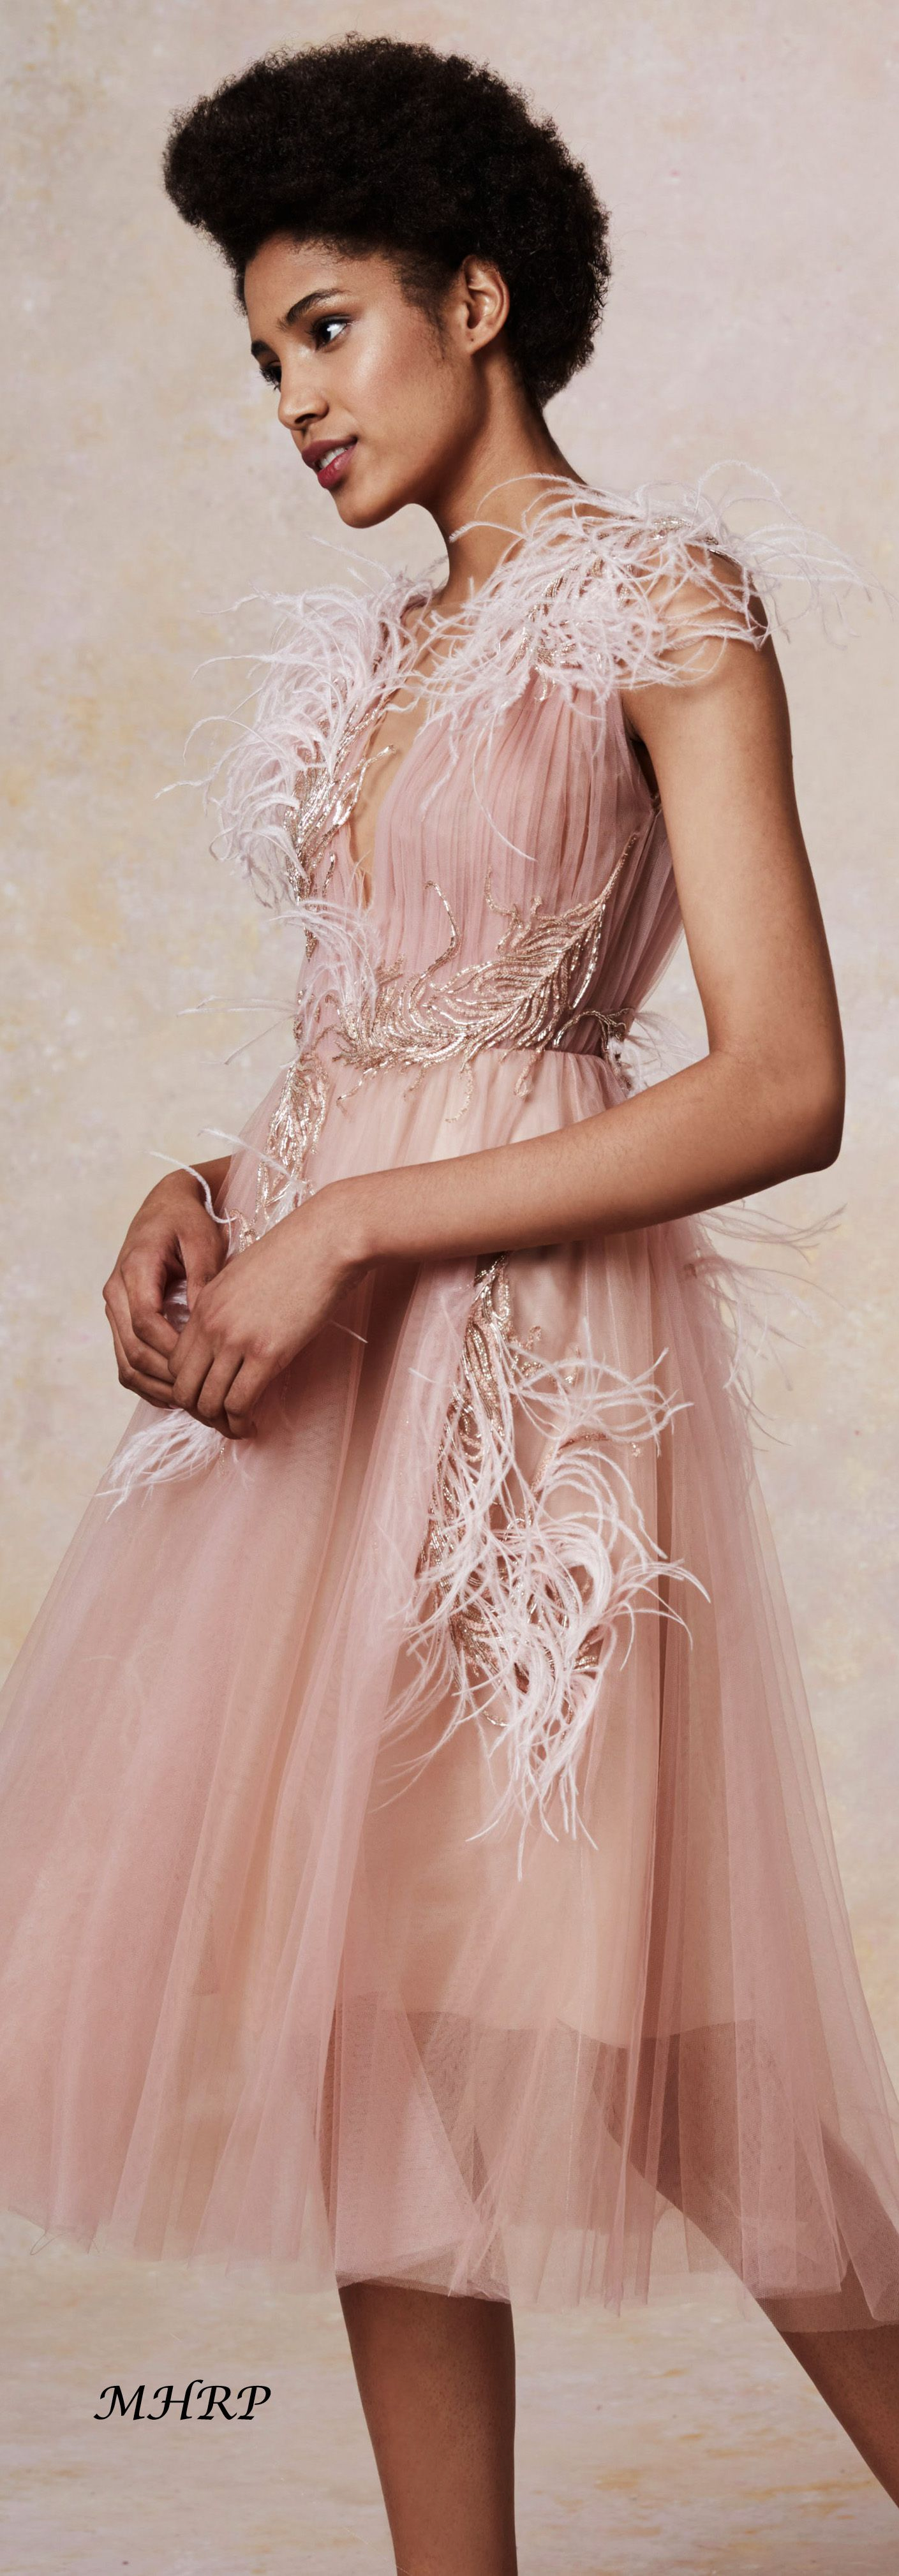 Marchesa-Vogue-Resort-2019 | dresss | Pinterest | Vestiditos